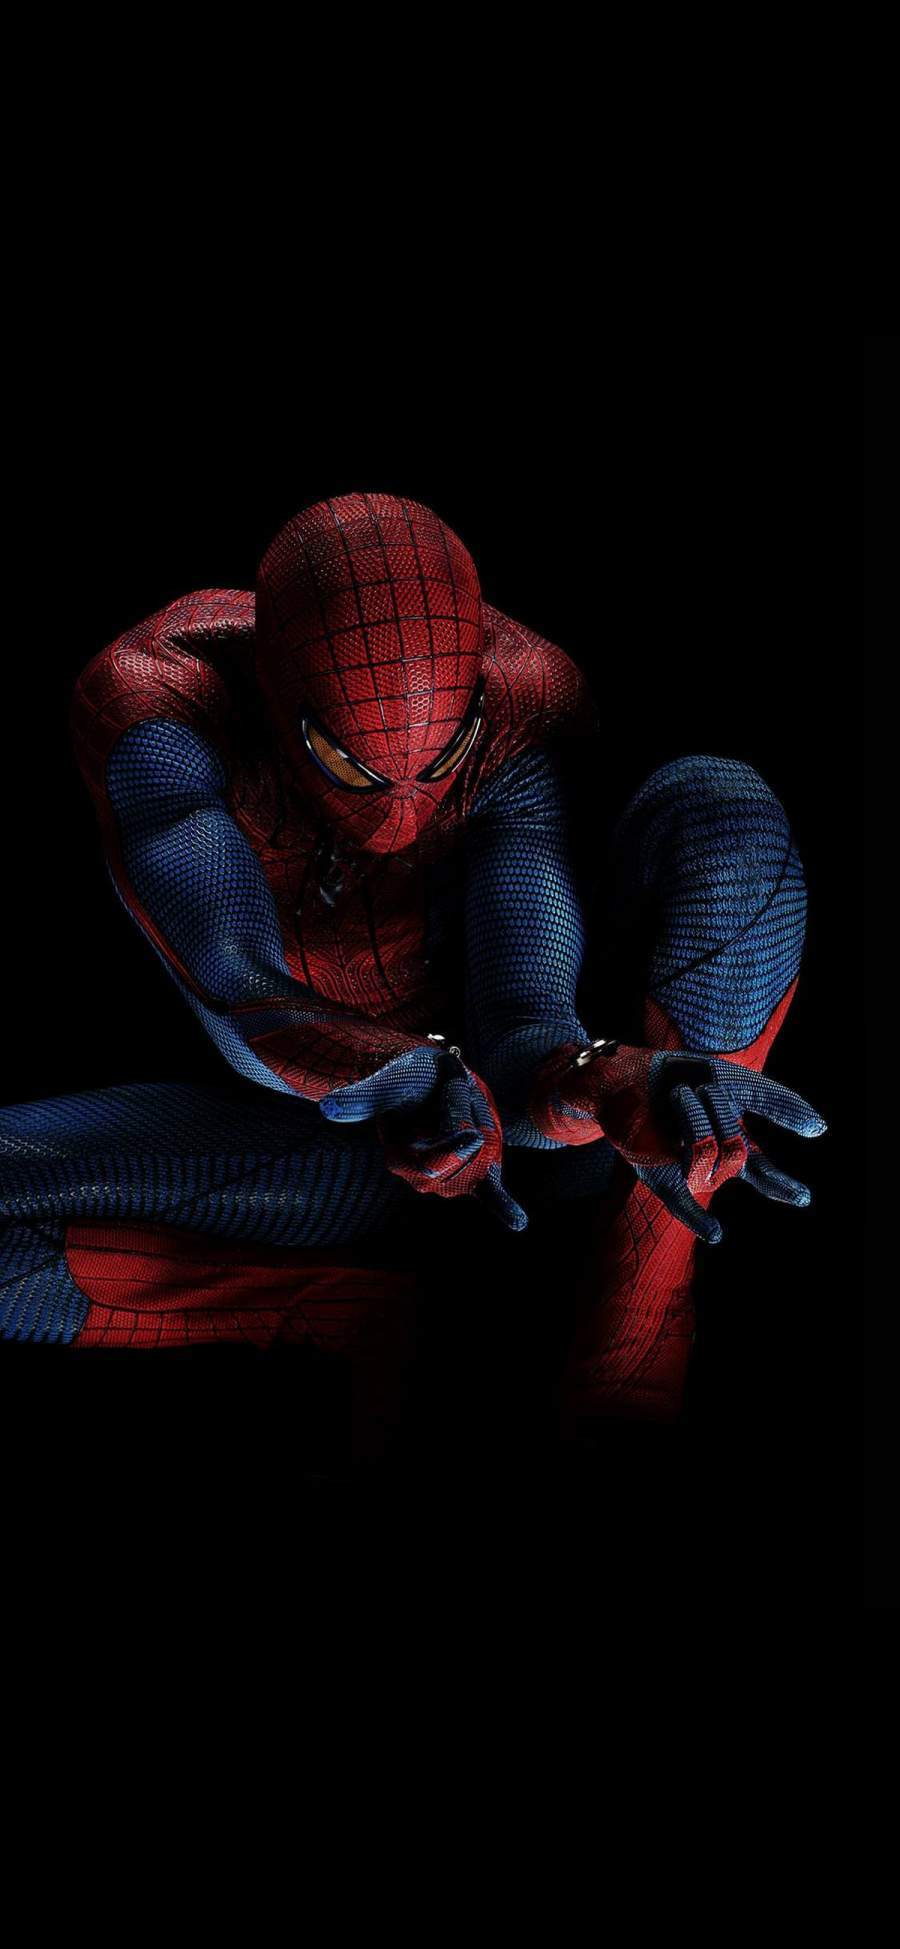 Spiderman in Dark